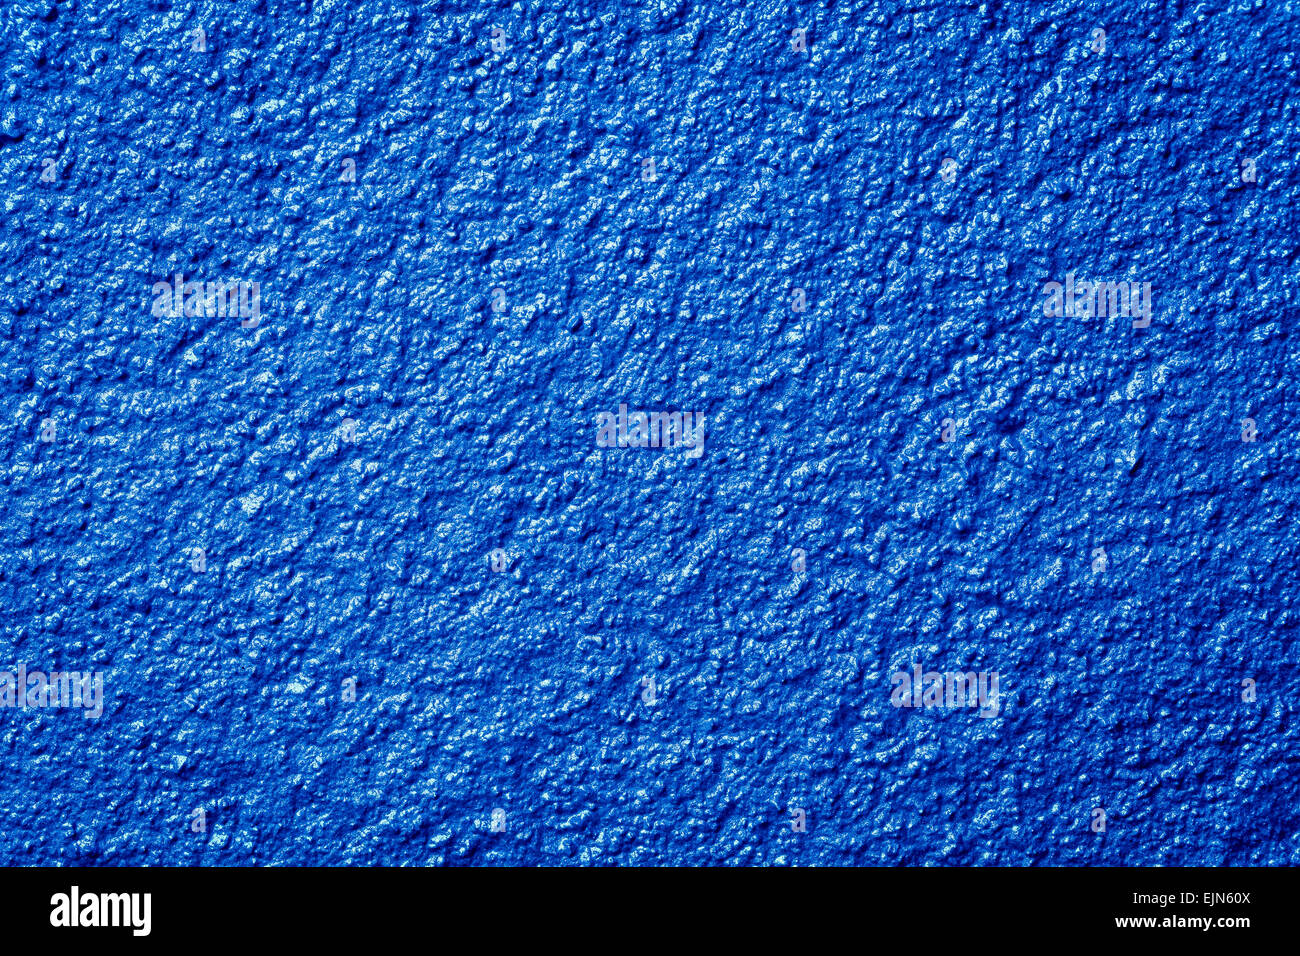 Photo Of A Grunge Blue Metallic Paint Textured Background Wall